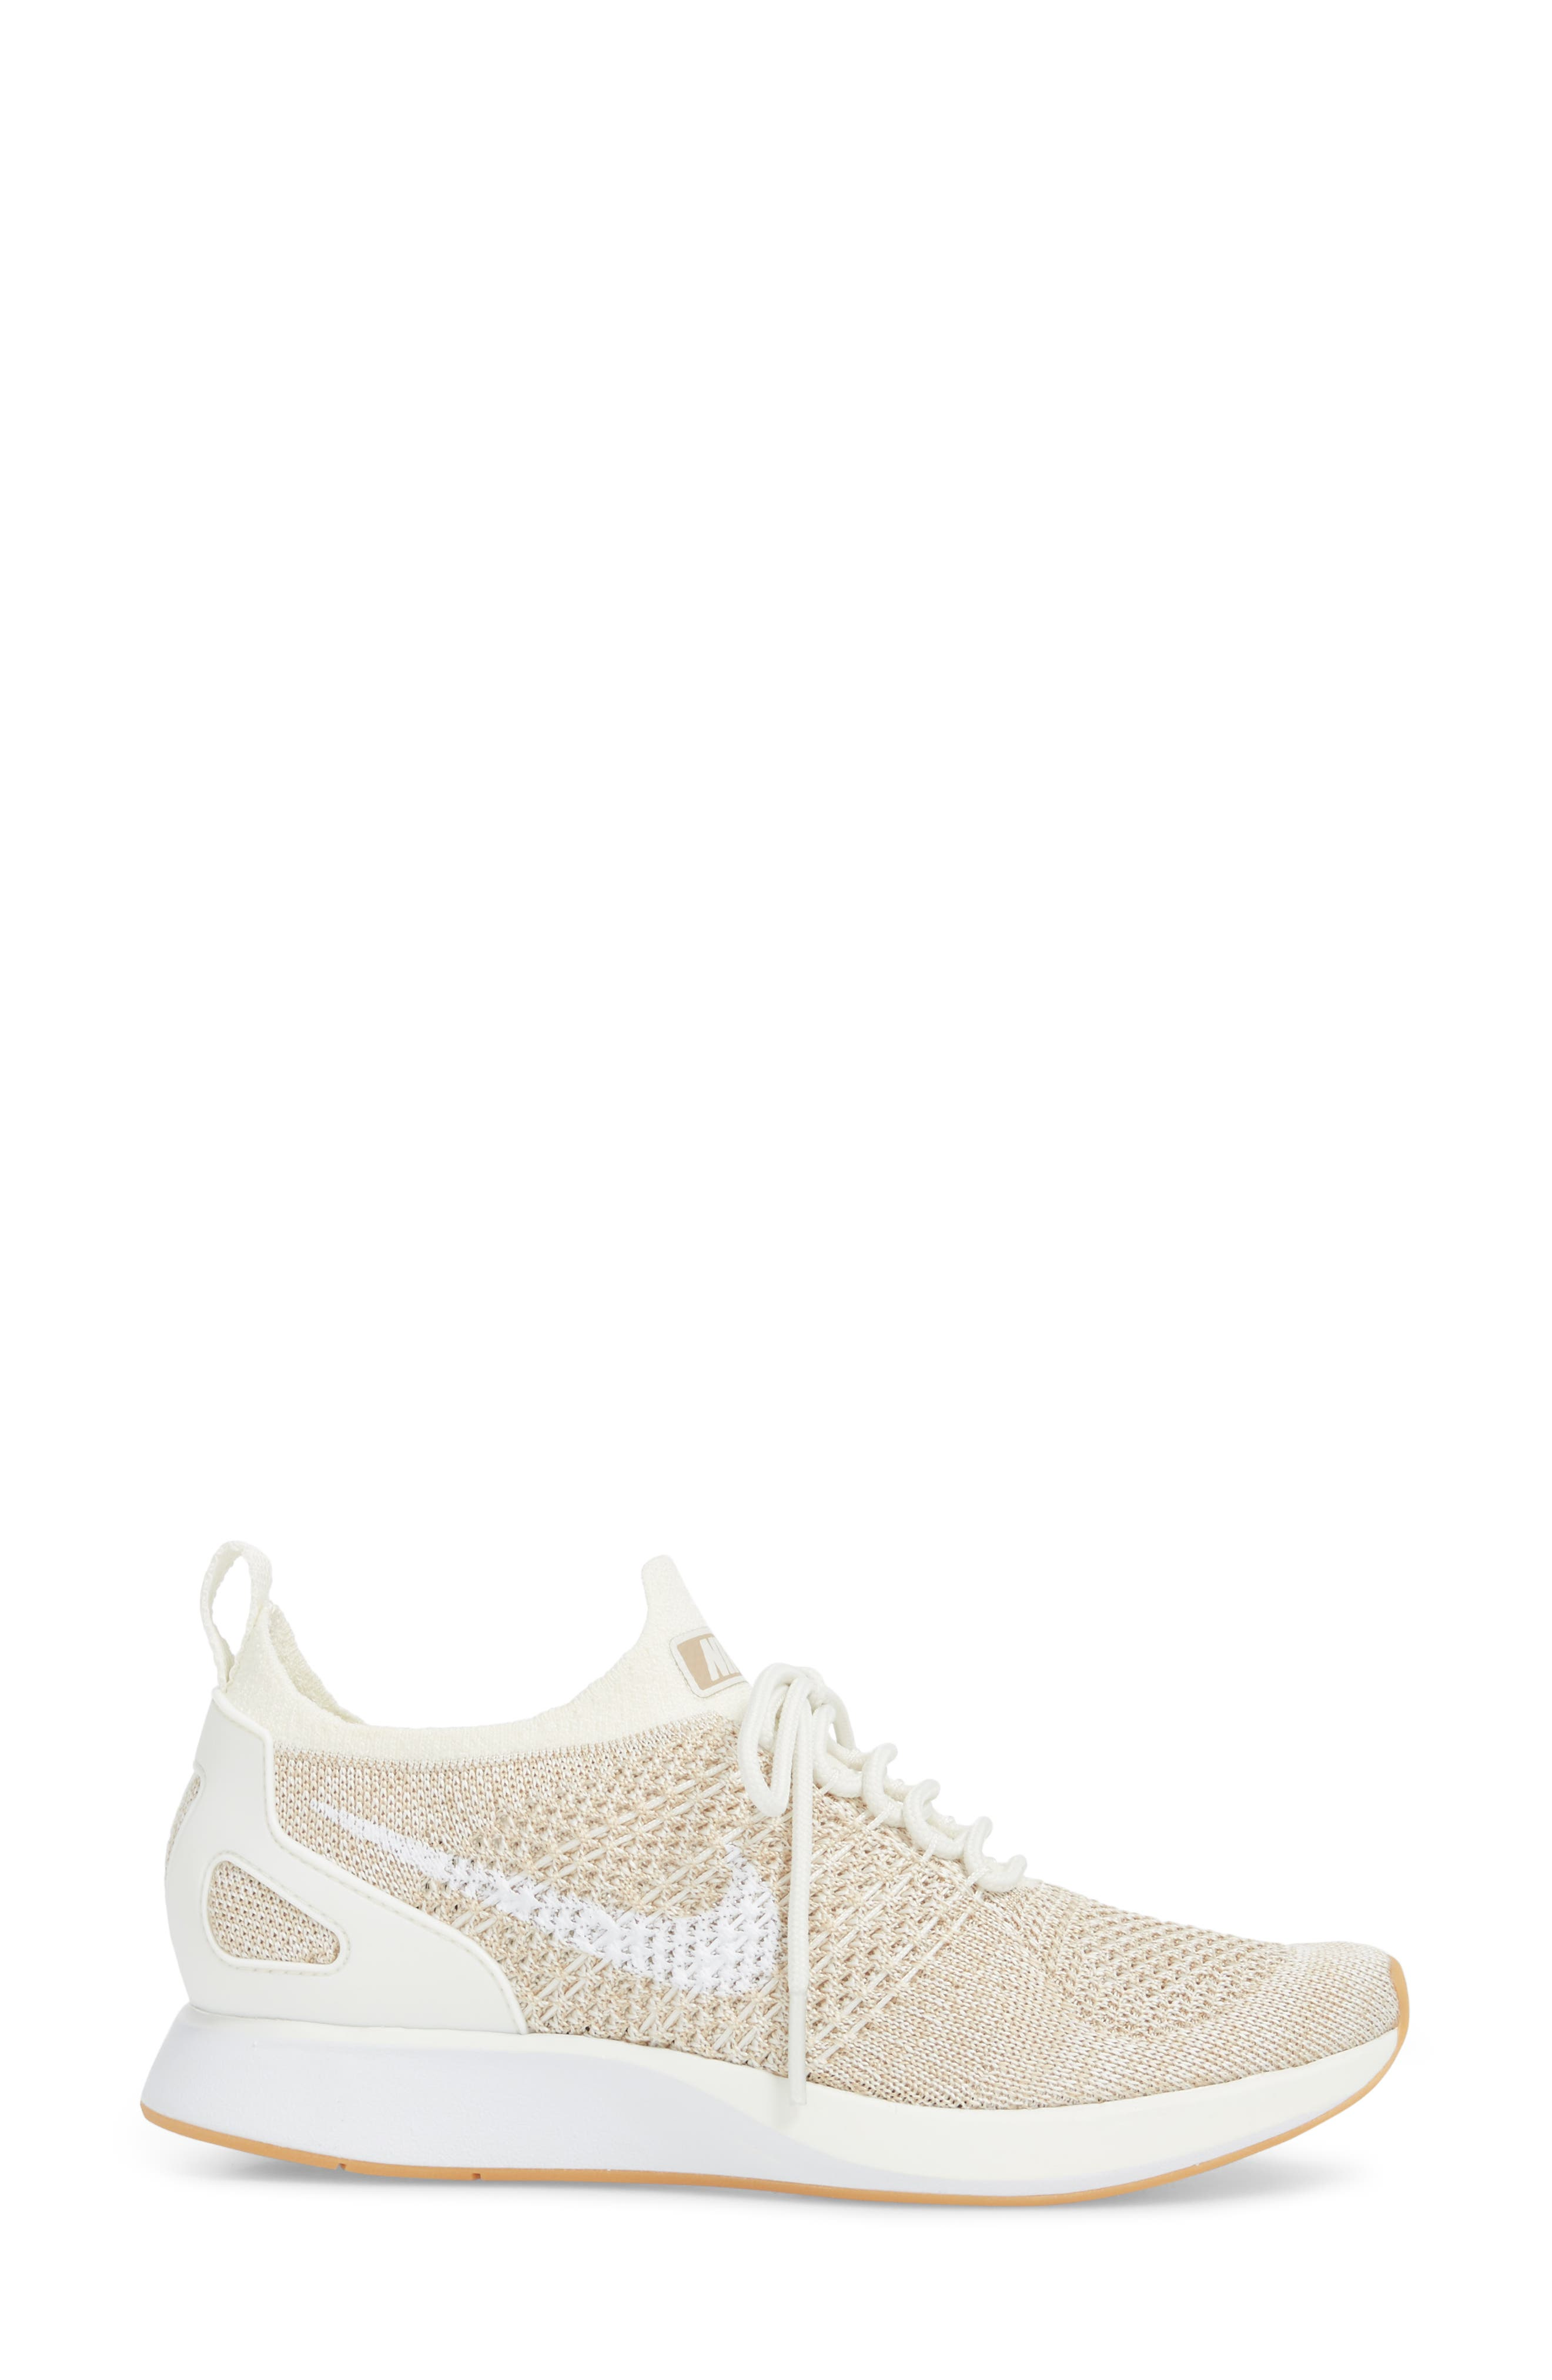 Air Zoom Mariah Flyknit Racer Sneaker,                             Alternate thumbnail 3, color,                             SAIL/ WHITE/ SAND